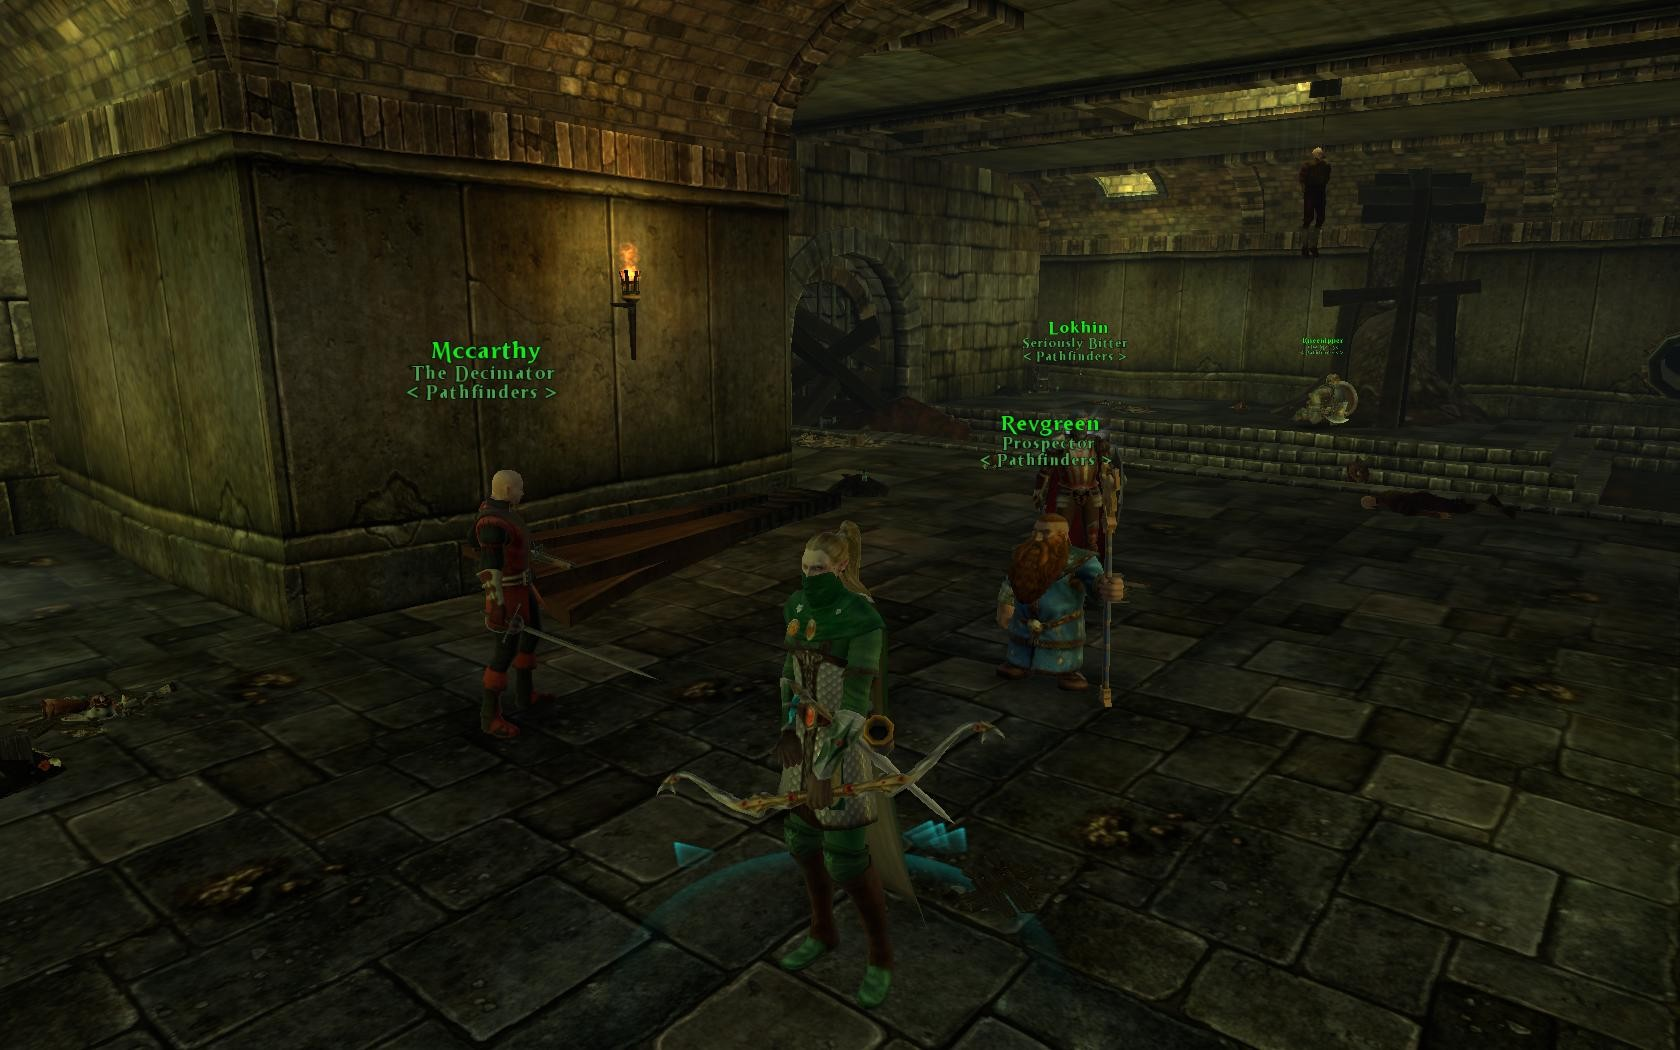 Altdorf Sewers Mmorpgcom Warhammer Online Age Of Reckoning Galleries